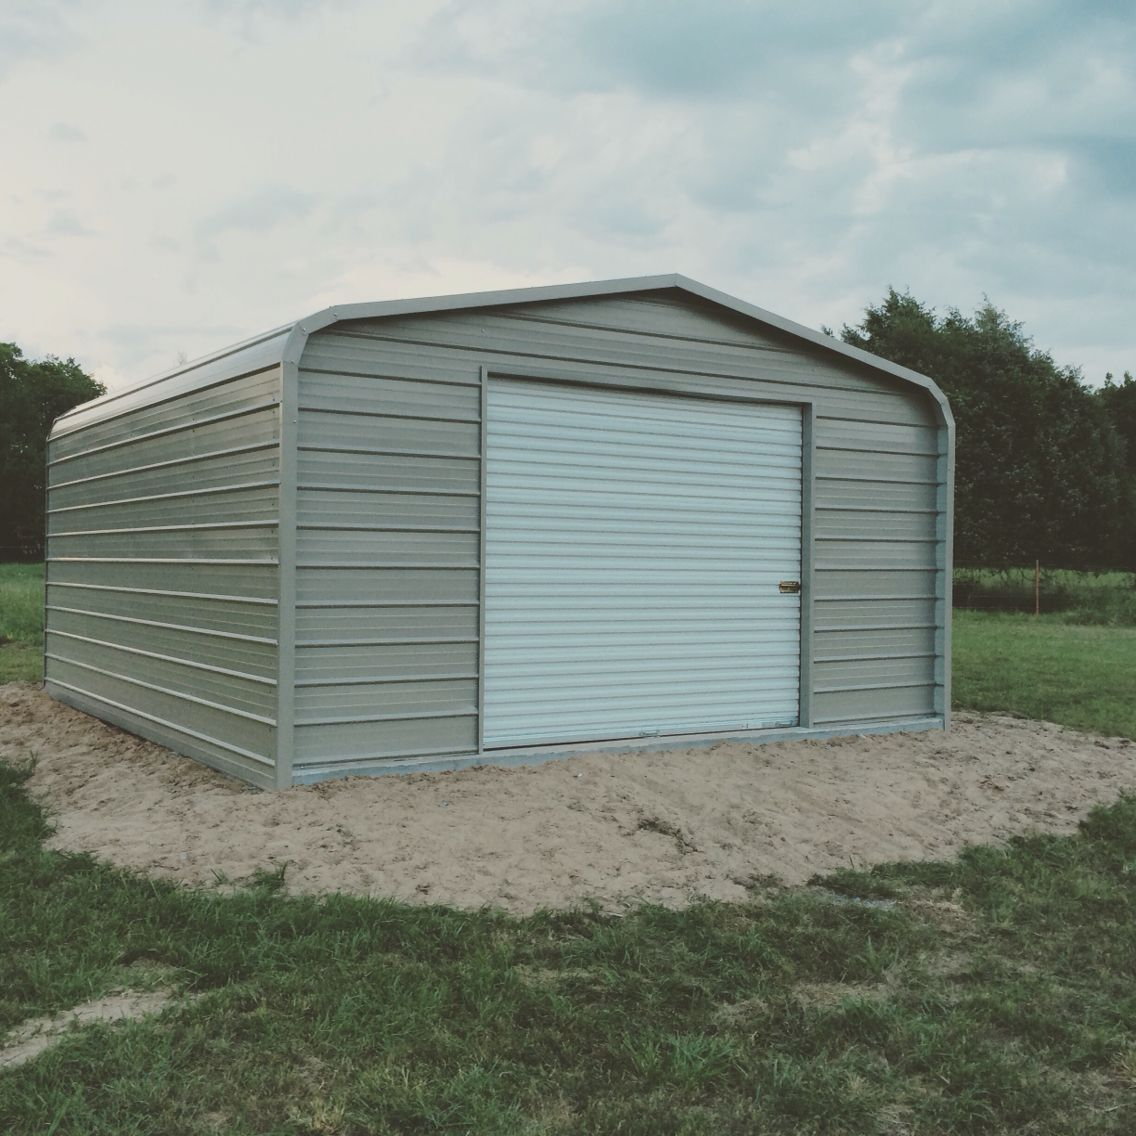 We Order This 18u0027x21u0027 Metal Shop Building From Gatorback Carports. They  Built It On The Cement Slab We Had Poured In About 3 Hours.